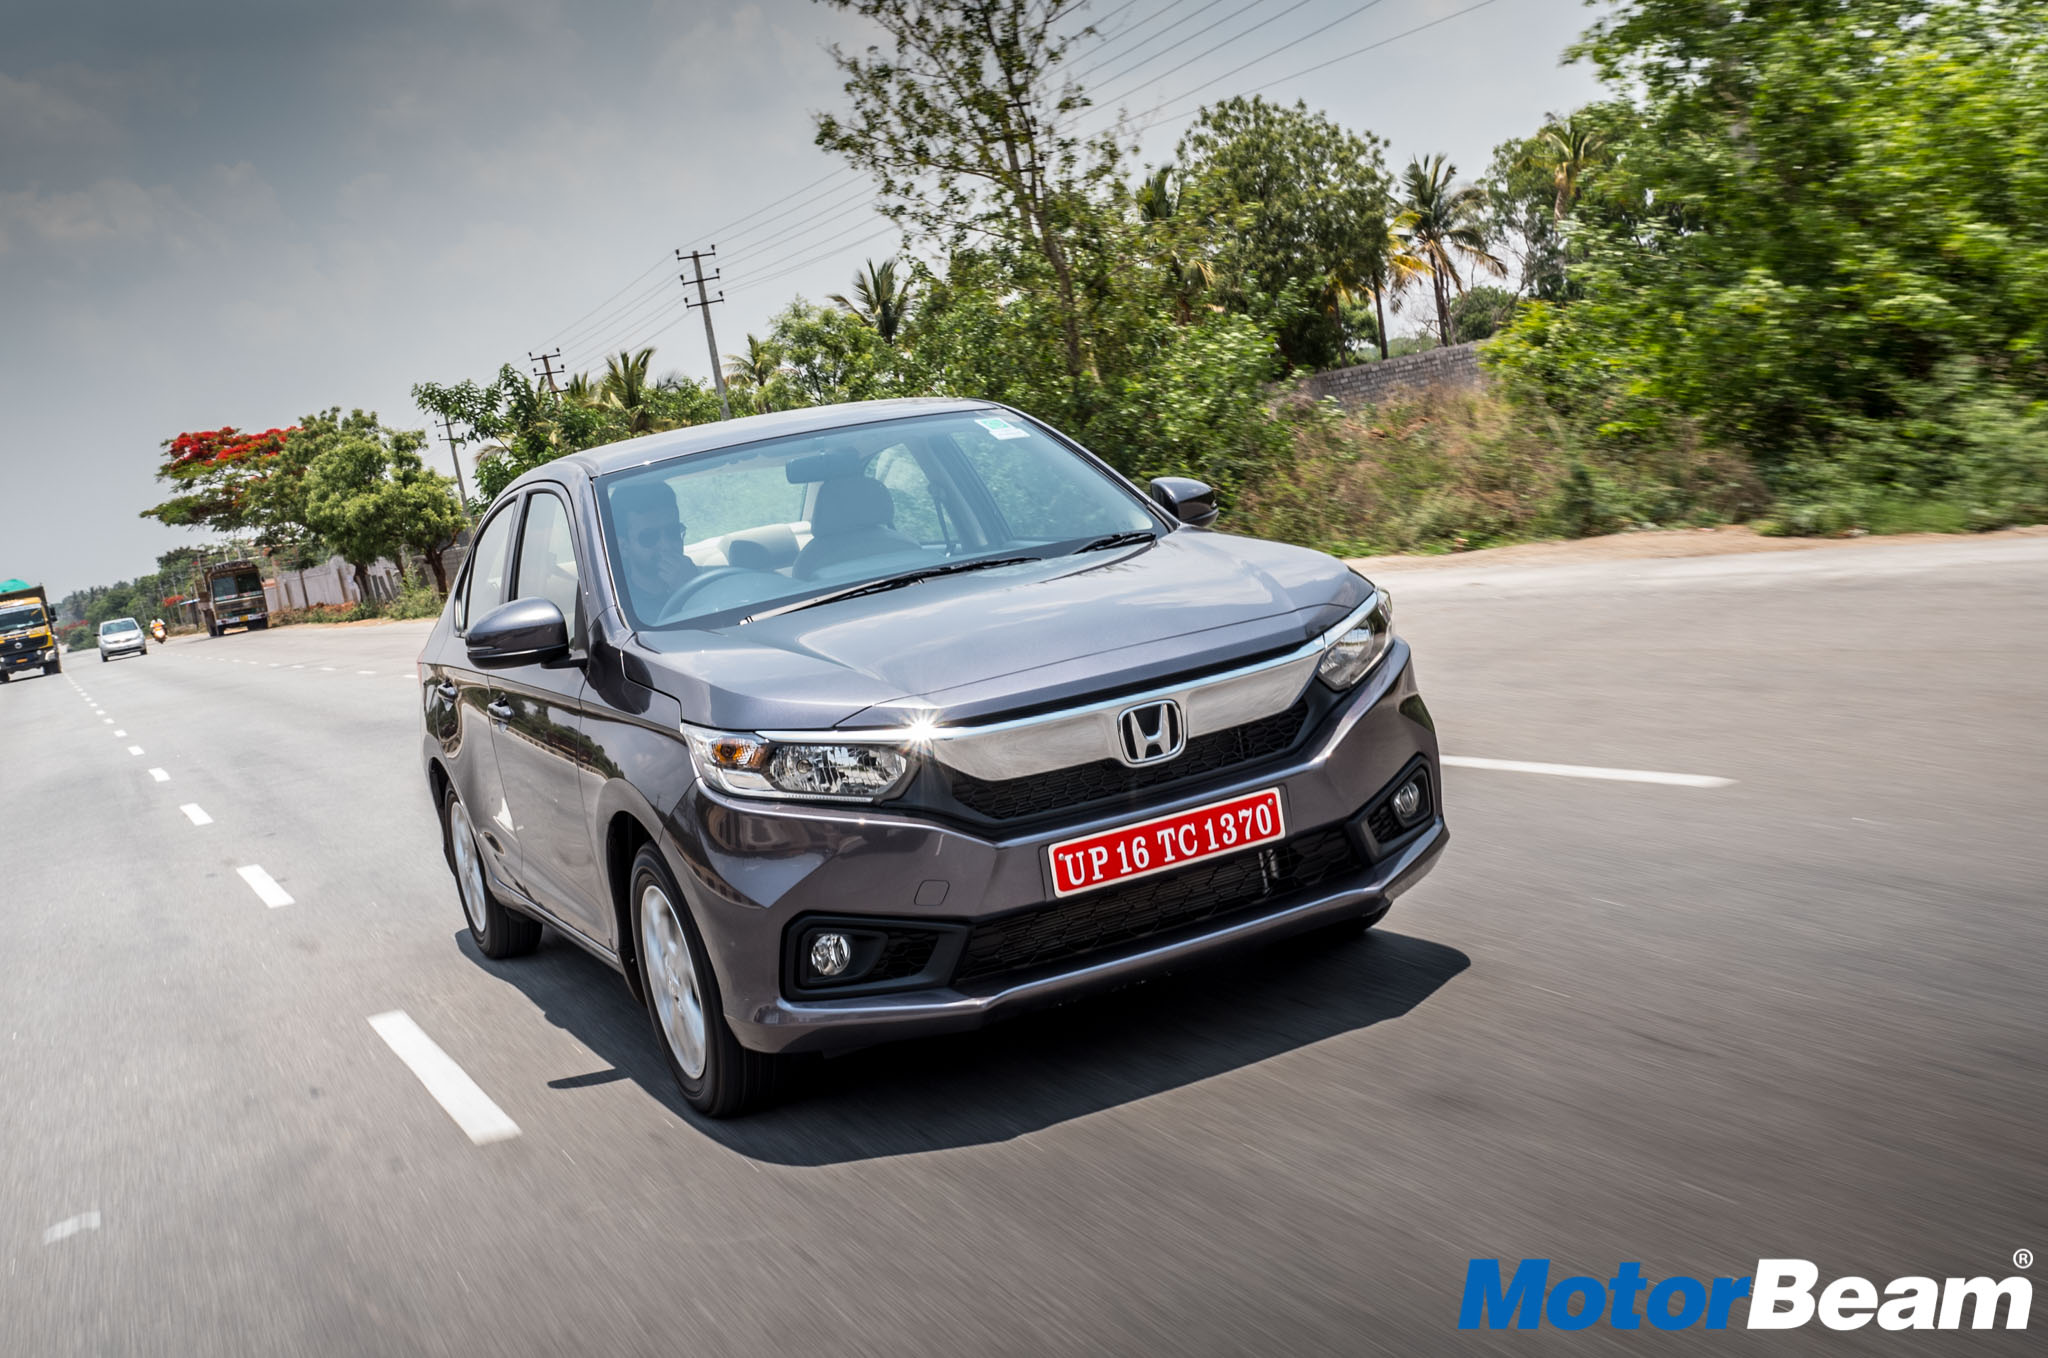 2018 Honda Amaze Recalled In India 7290 Cars Affected